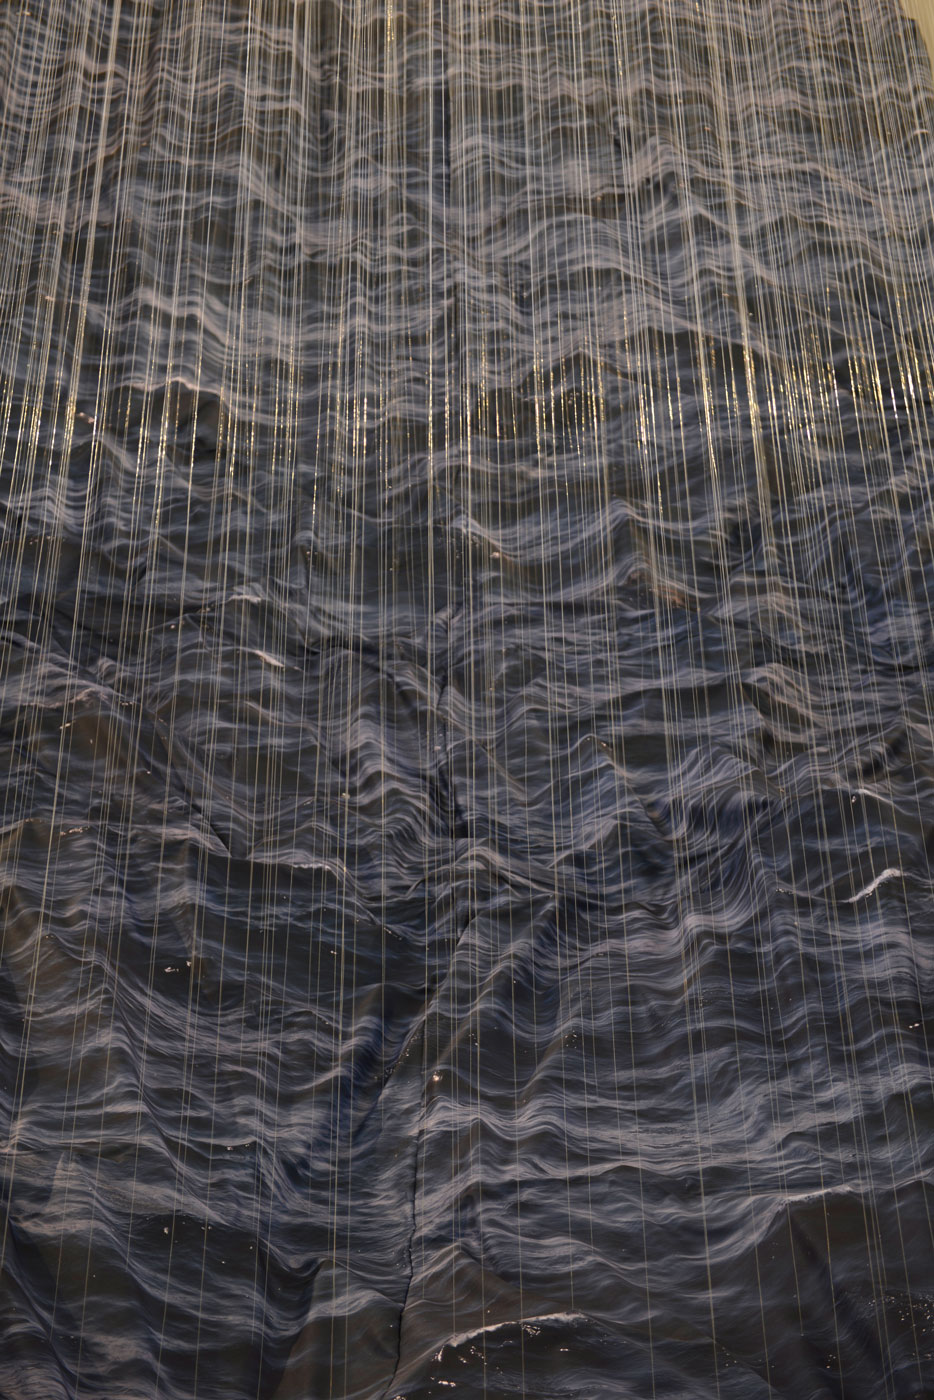 De Profundis, © 2018, print on fabric, fishing line, lead balls, 900 x 800 x 400 cm